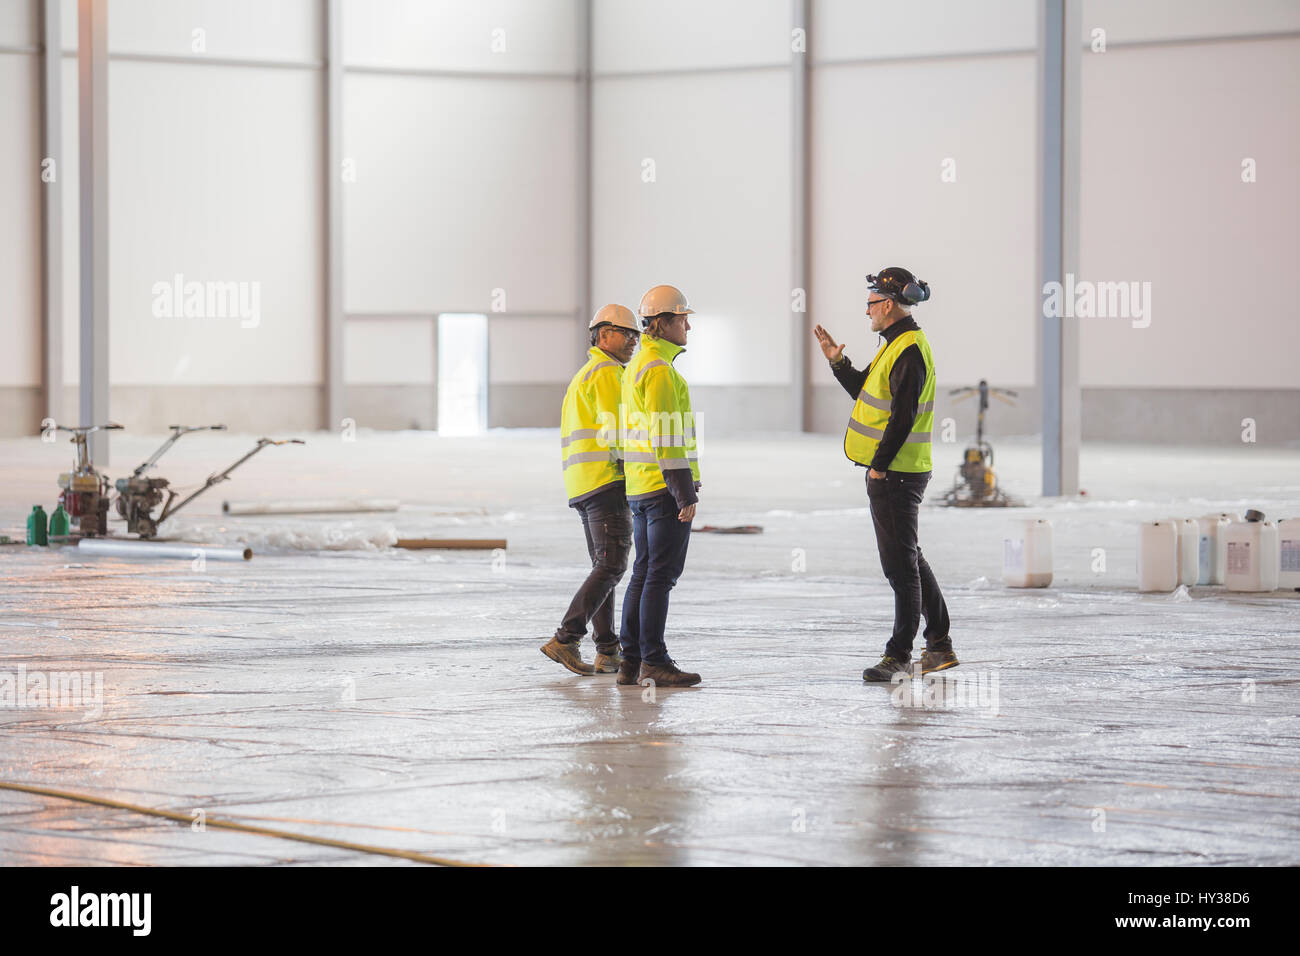 Sweden, Three engineers at work - Stock Image